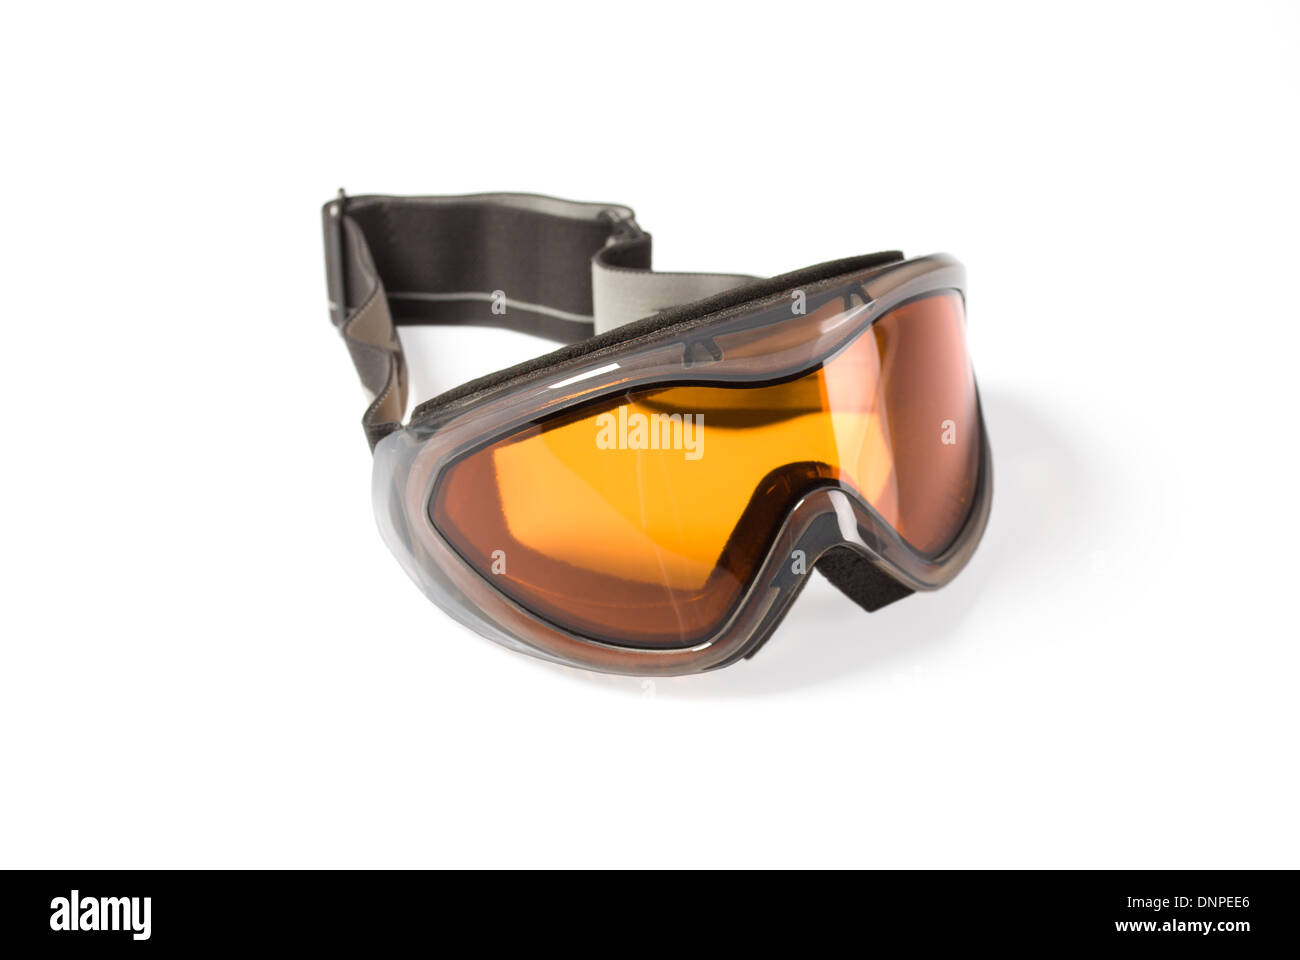 goggles for snowboarding or skiing - Stock Image